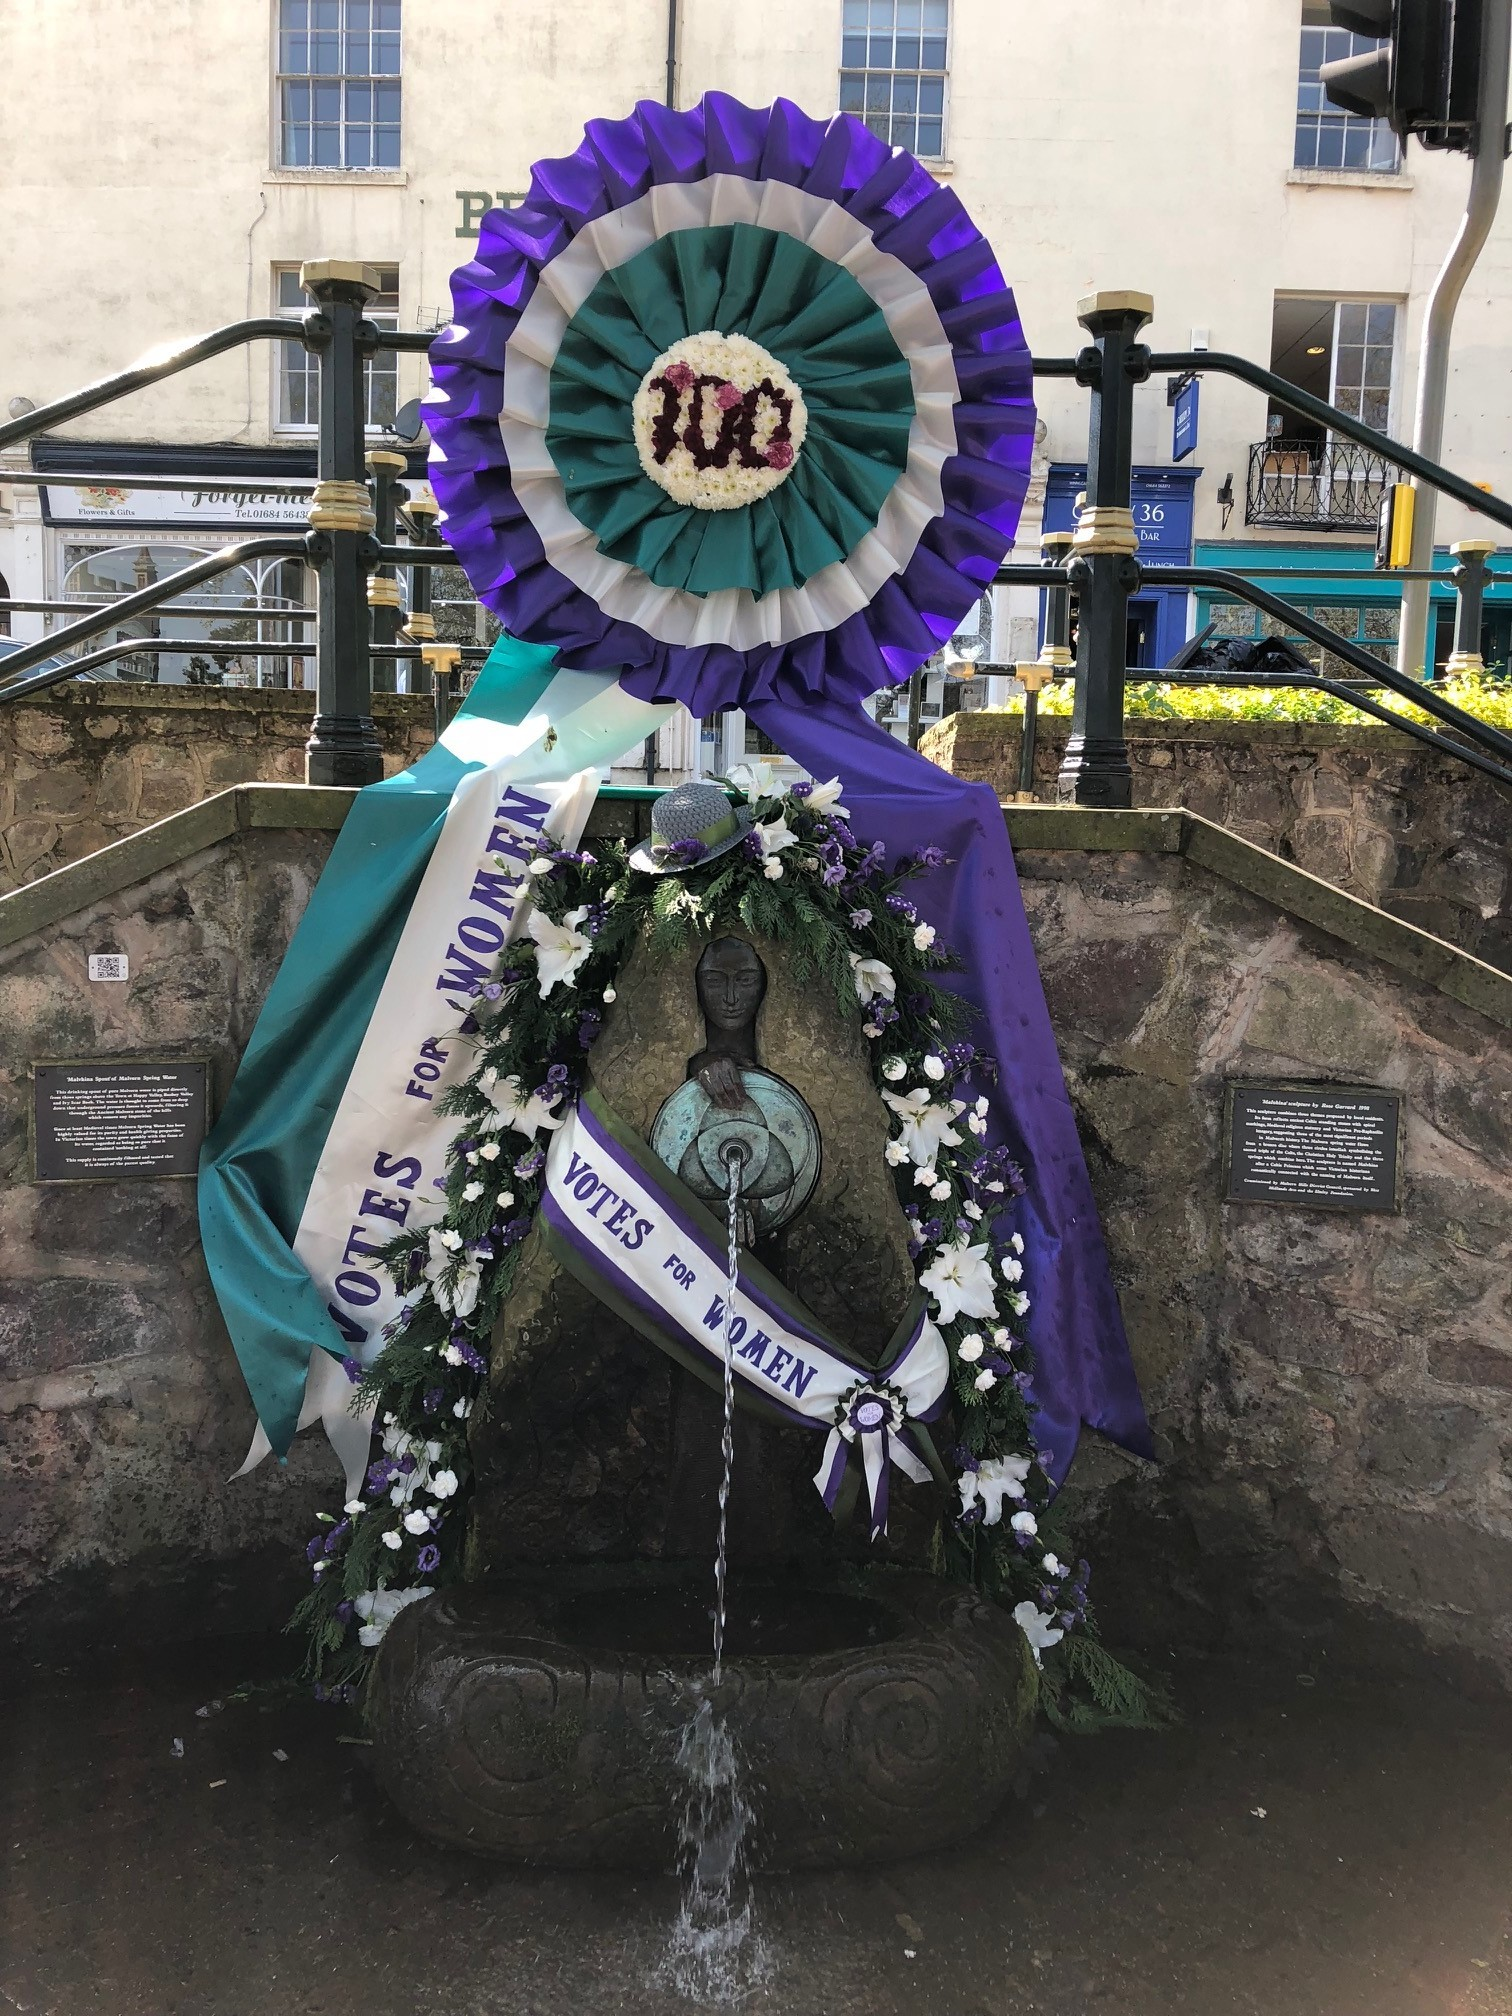 FESTIVAL: The Malvhina Fountain on Belle Vue Terrace was decorated last year to celebrate 100 years of votes for women.